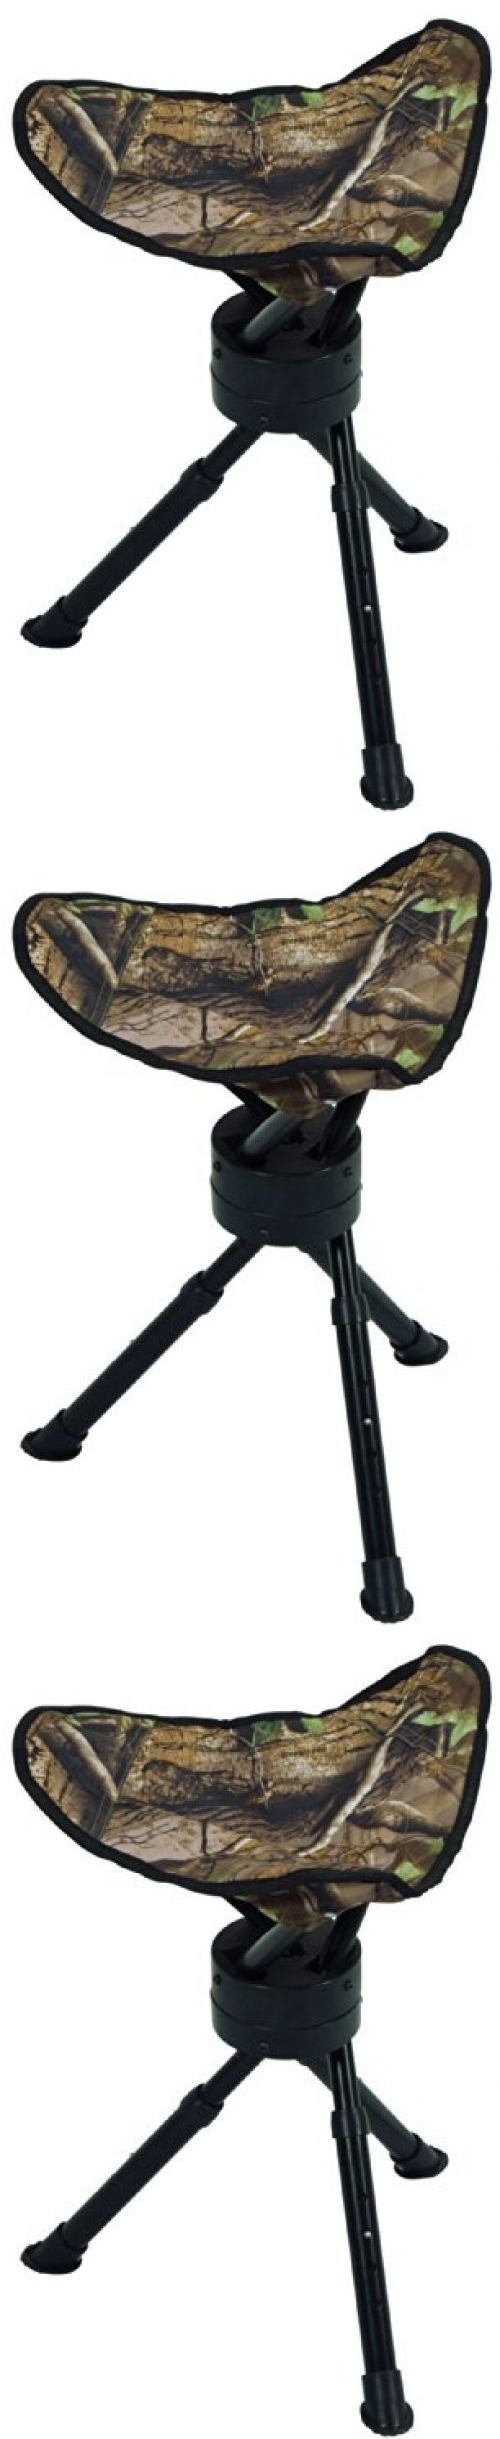 Seats and Chairs 52507 Hunting Stool Chair Tripod Swivel Camo Portable Compact Deer Tree Stand  sc 1 st  Pinterest : hunting chairs and stools - islam-shia.org